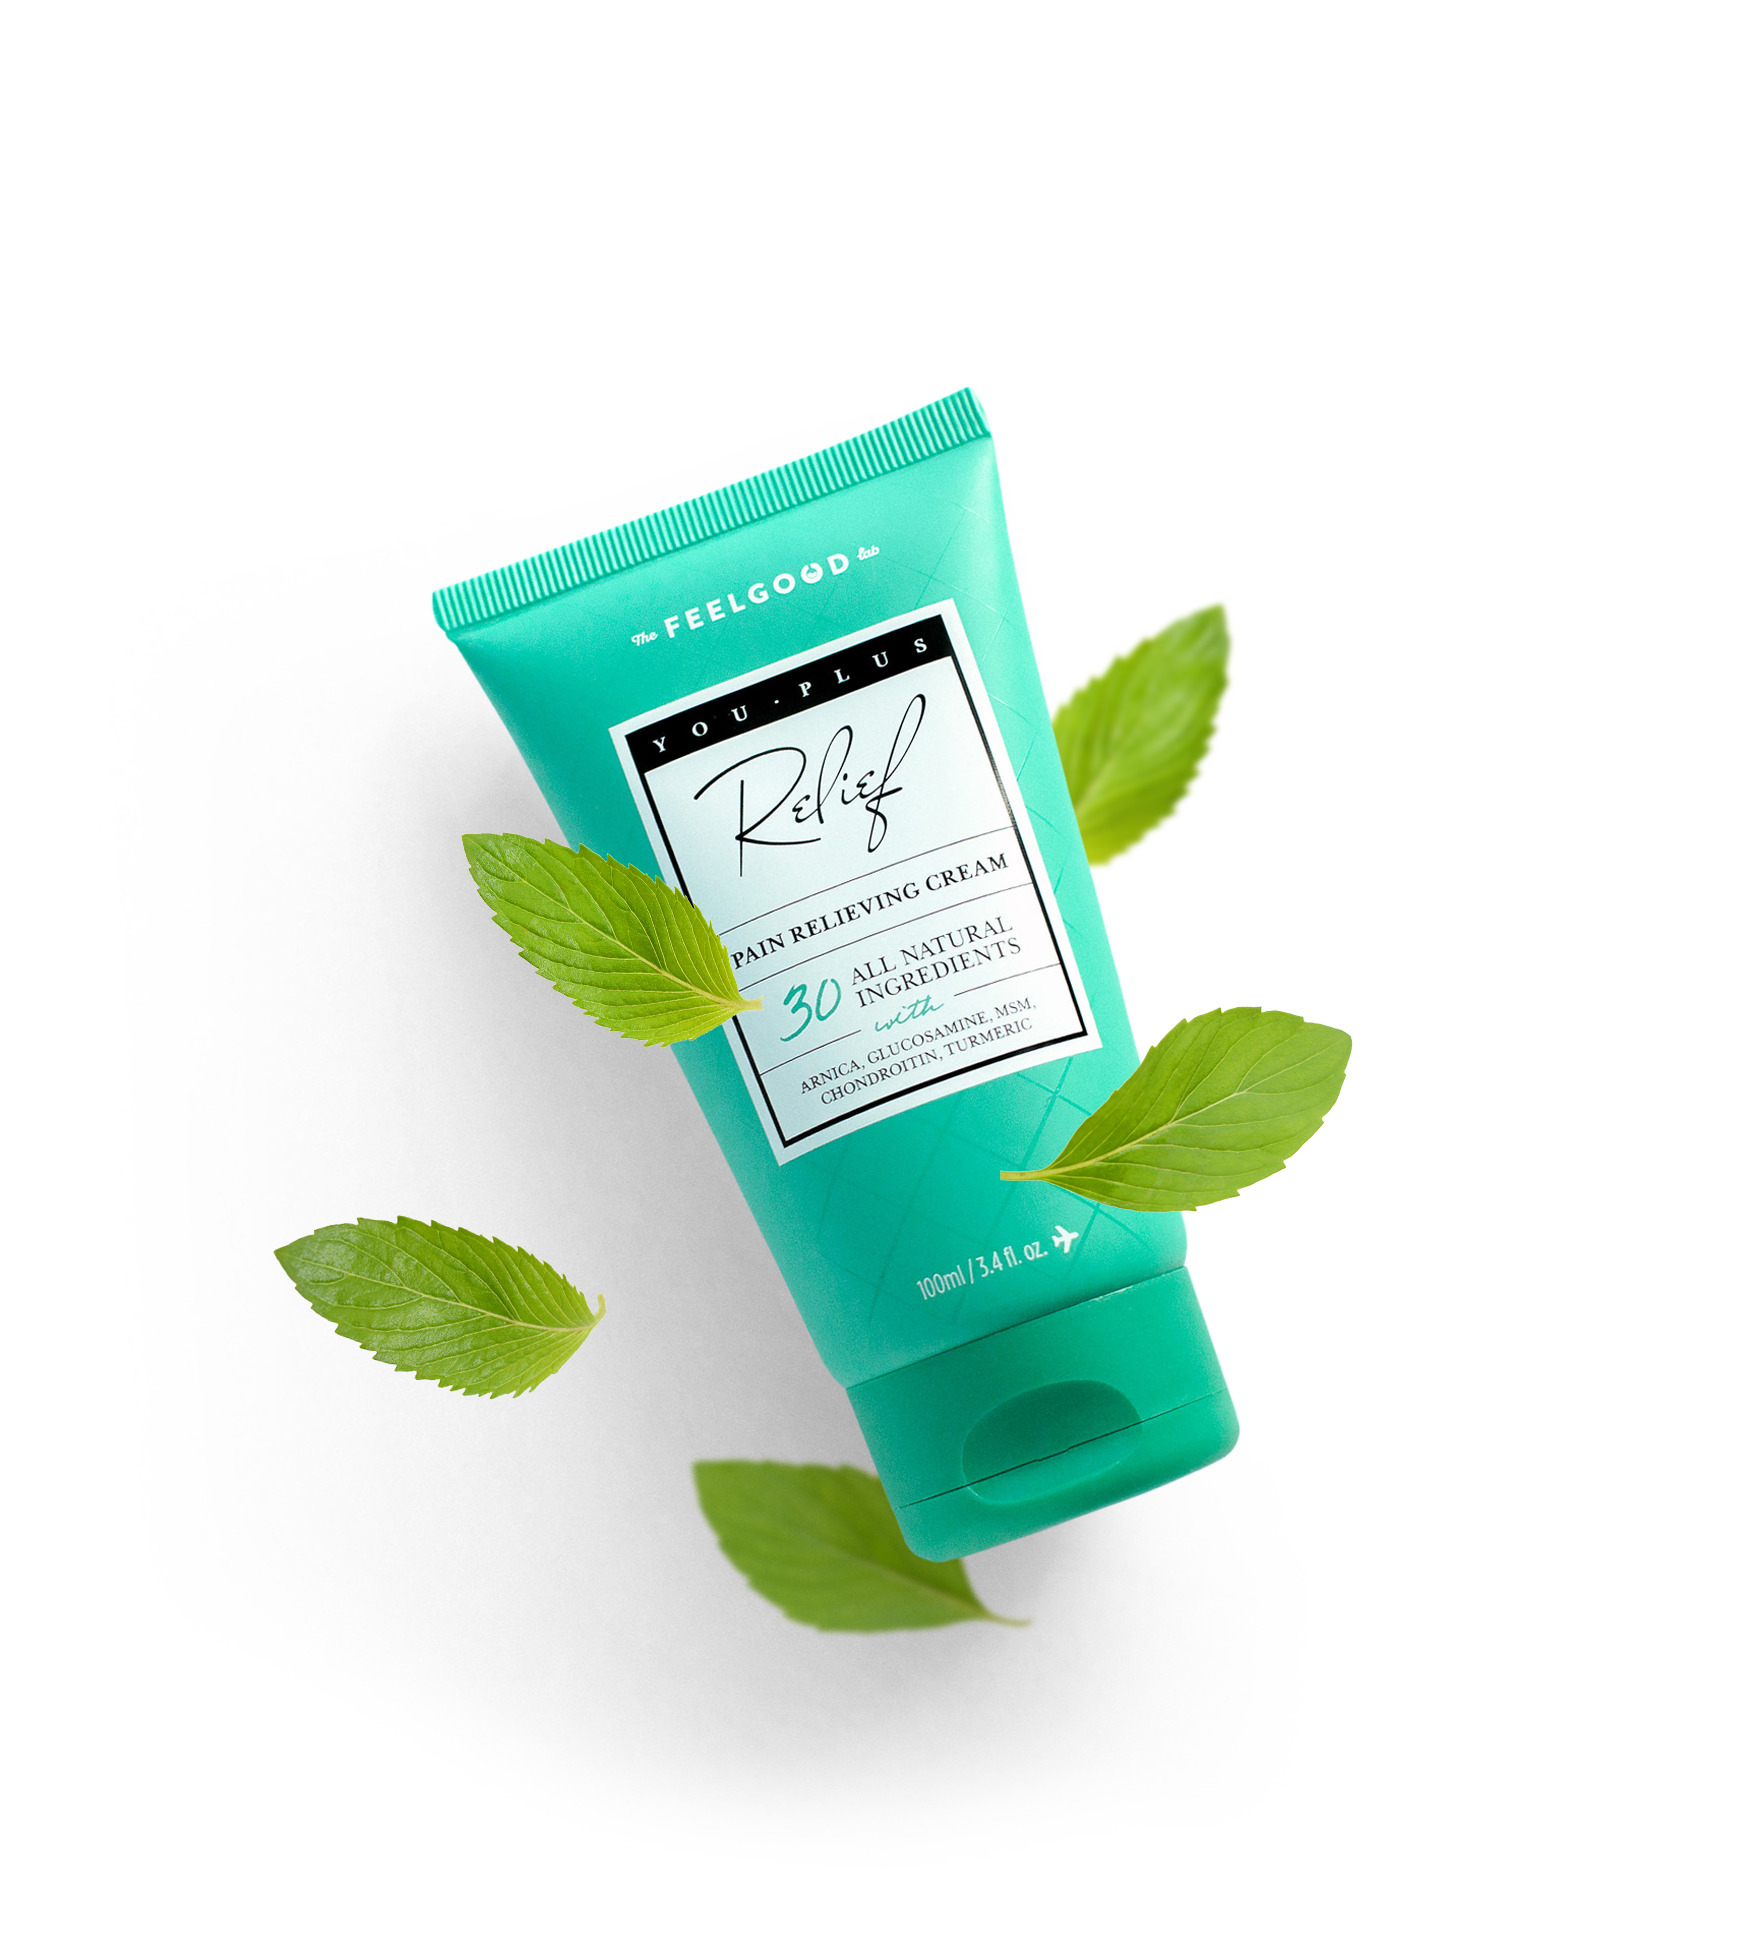 Menthol for Natural Topical Relief